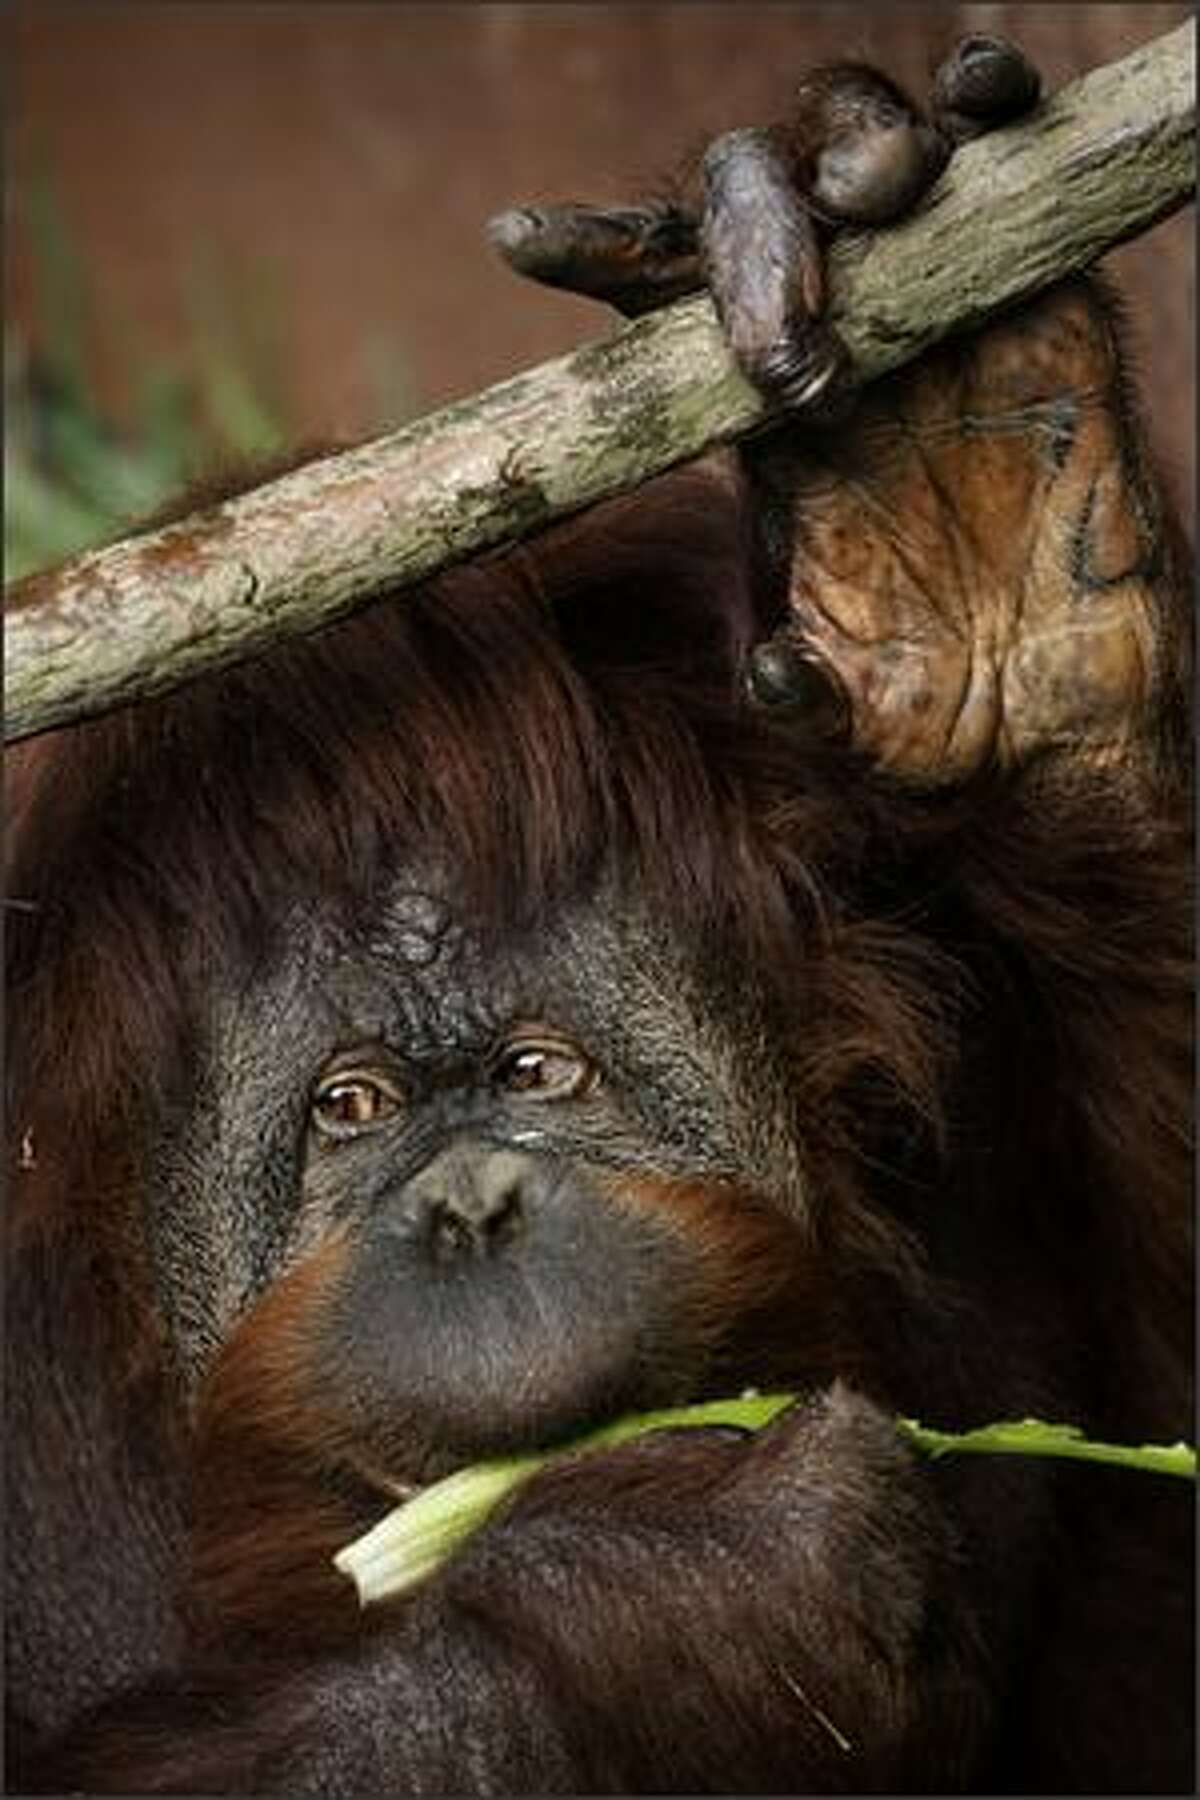 Chinta, an orangutan, chomps a celery treat at the Woodland Park Zoo in Seattle. She, along with her twin brother, Towan, will celebrate their 40th birthday Saturday.